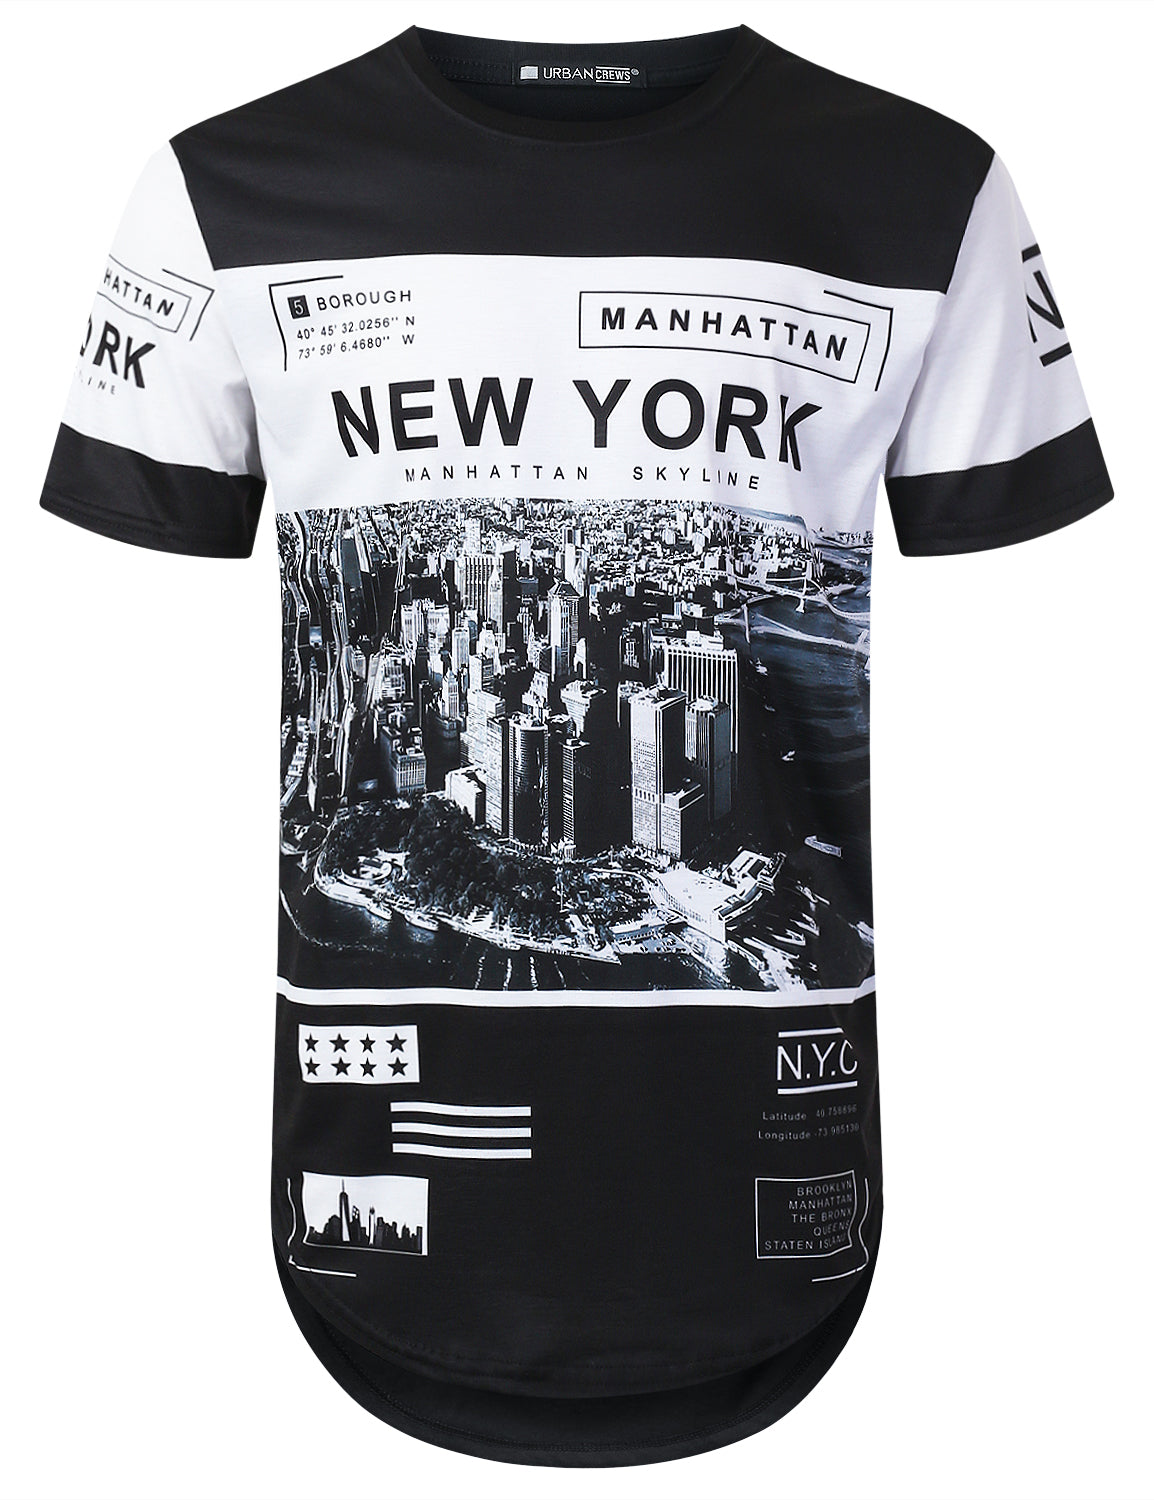 BLACK New York Manhattan Longline T-shirt - URBANCREWS